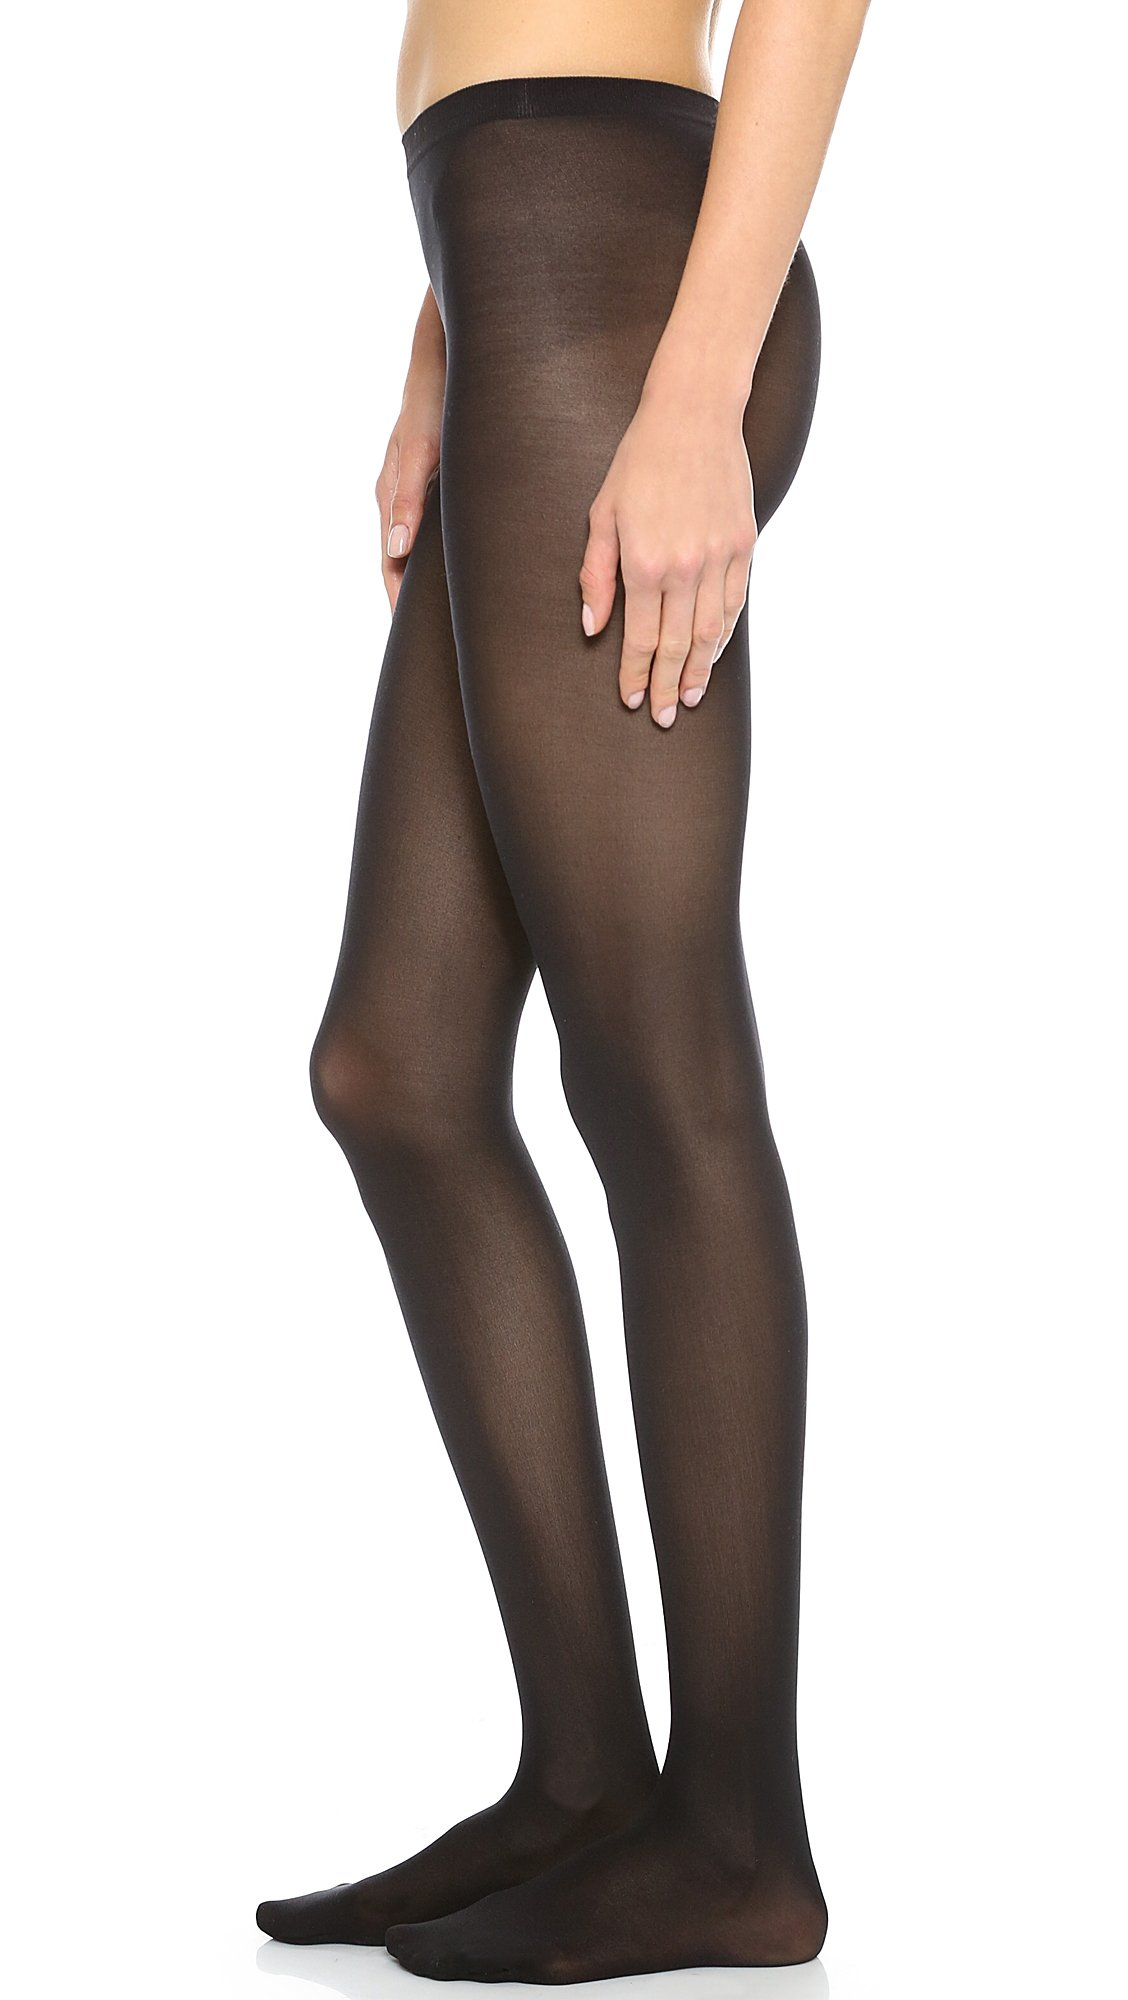 Wolford Women's Velvet De Luxe 50 Tights, Black, Medium by Wolford